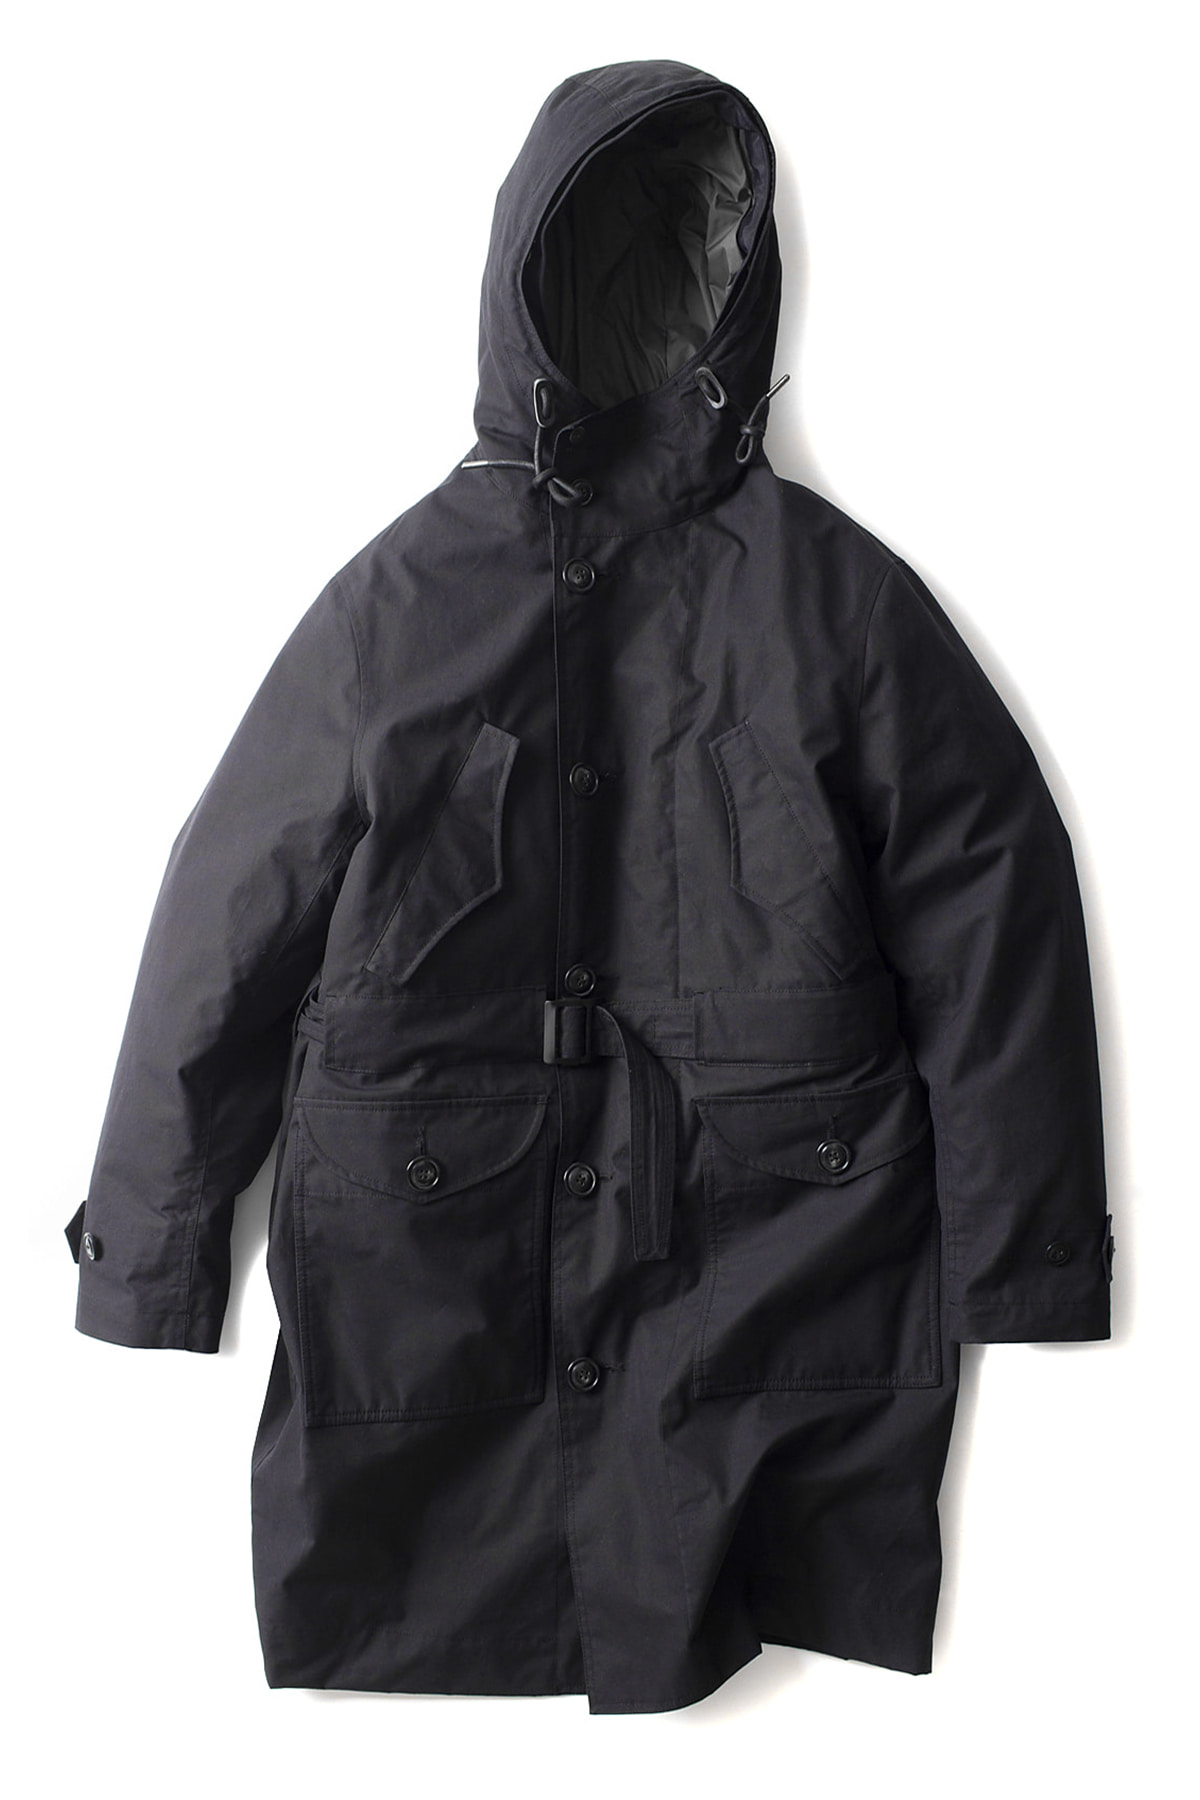 Eastlogue : Changjin Battle Parka (Black)